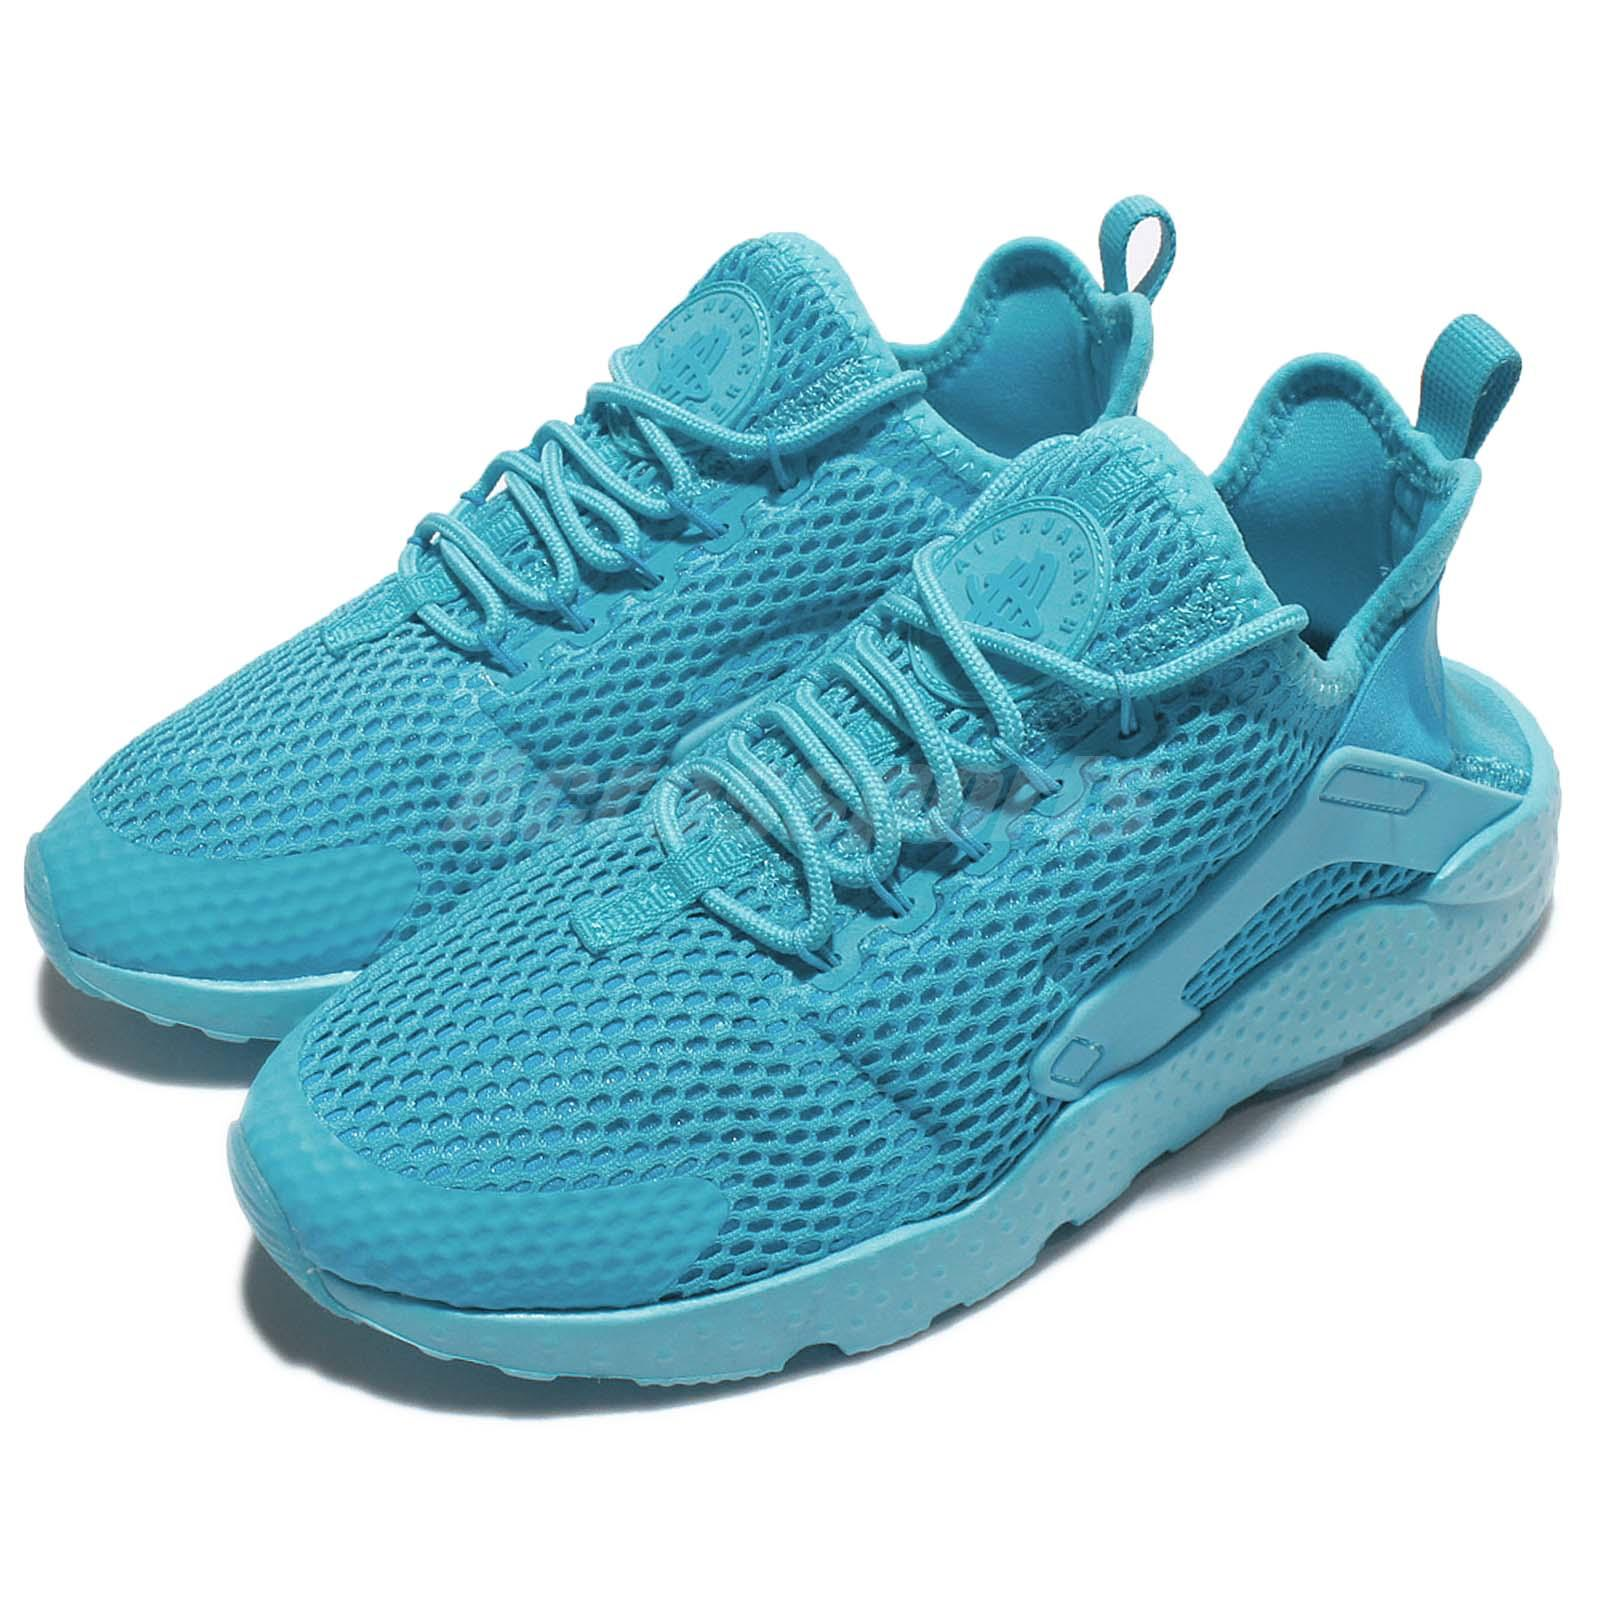 buy online 89038 0f3f7 Details about Wmns Nike Air Huarache Run Ultra BR Breeze Gamma Blue Womens  Running 833292-400